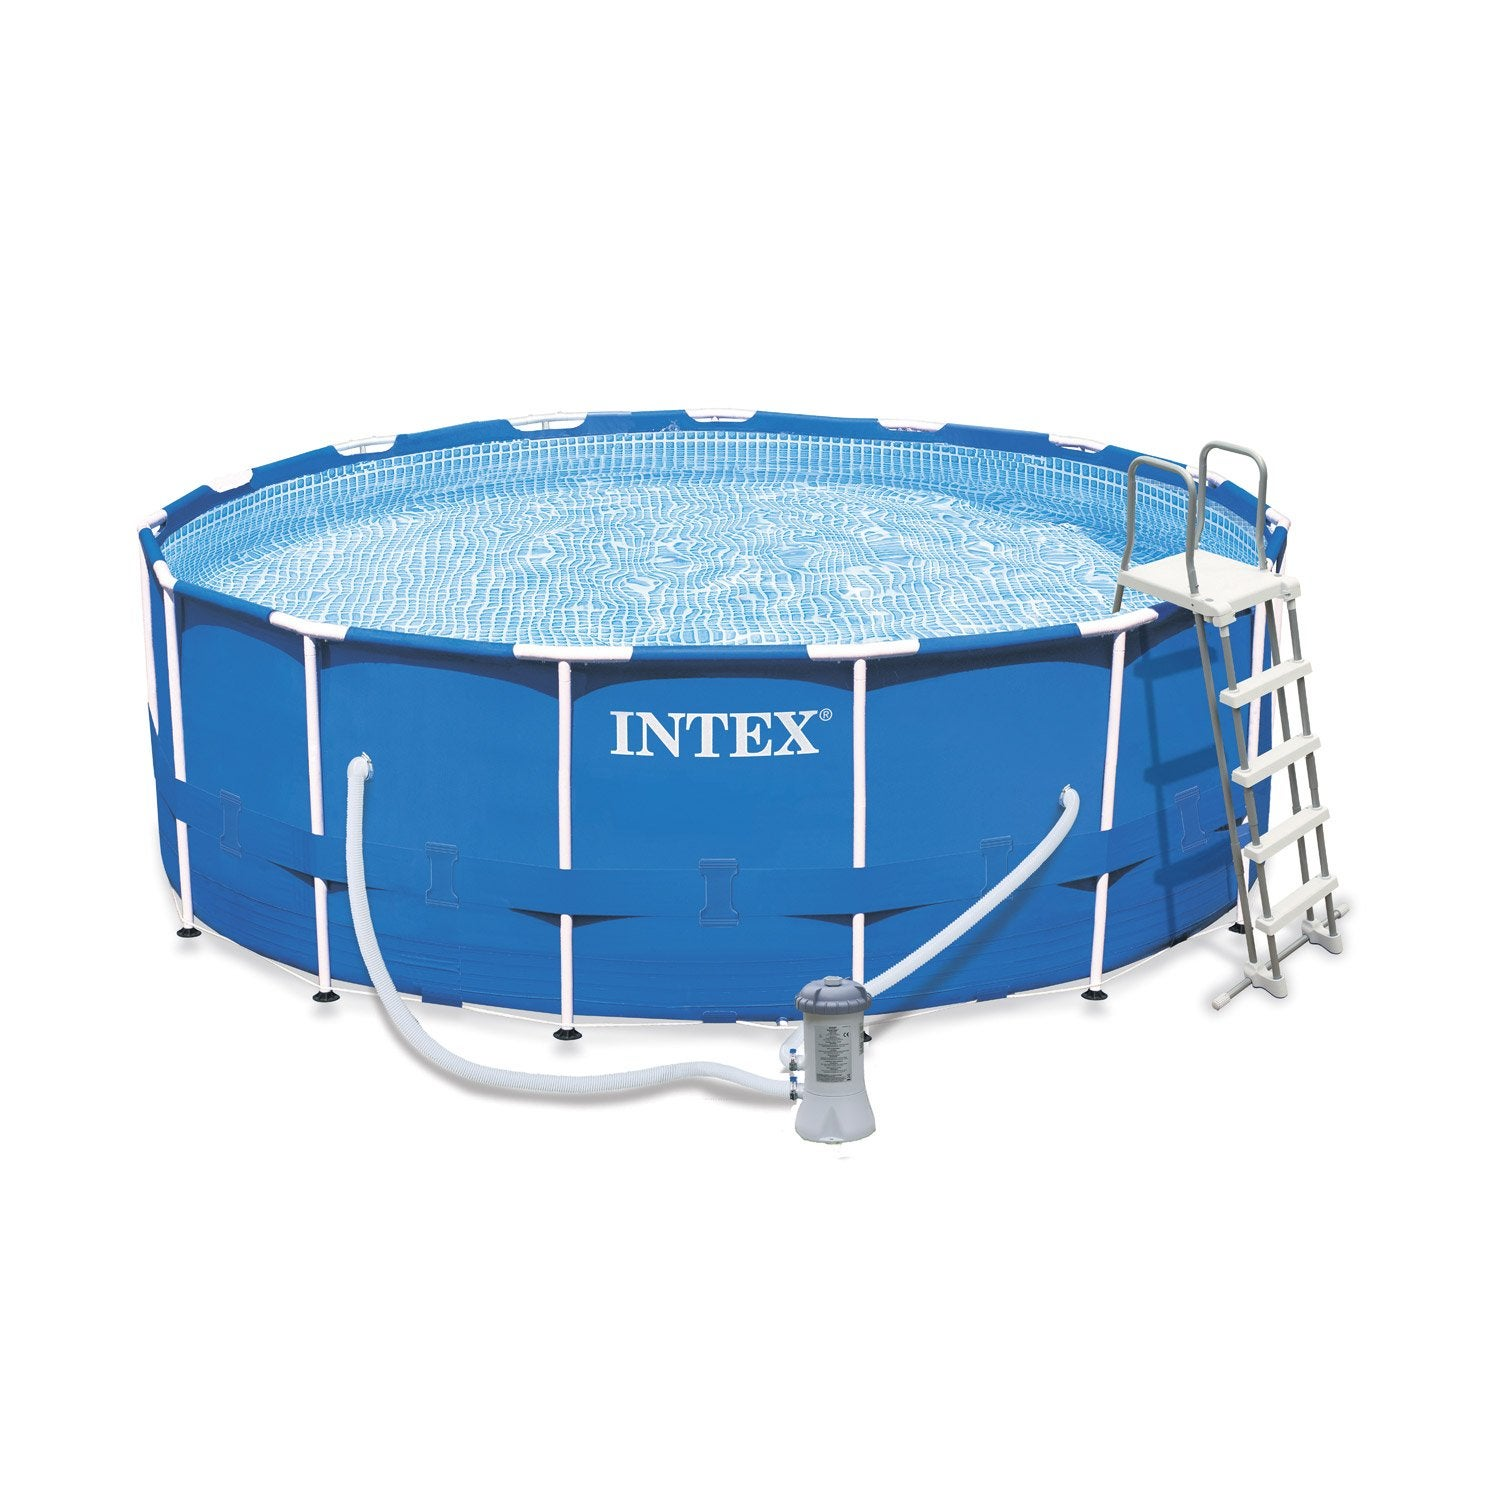 Piscine hors sol autoportante tubulaire metal frame intex for Piscine tubulaire 1 22